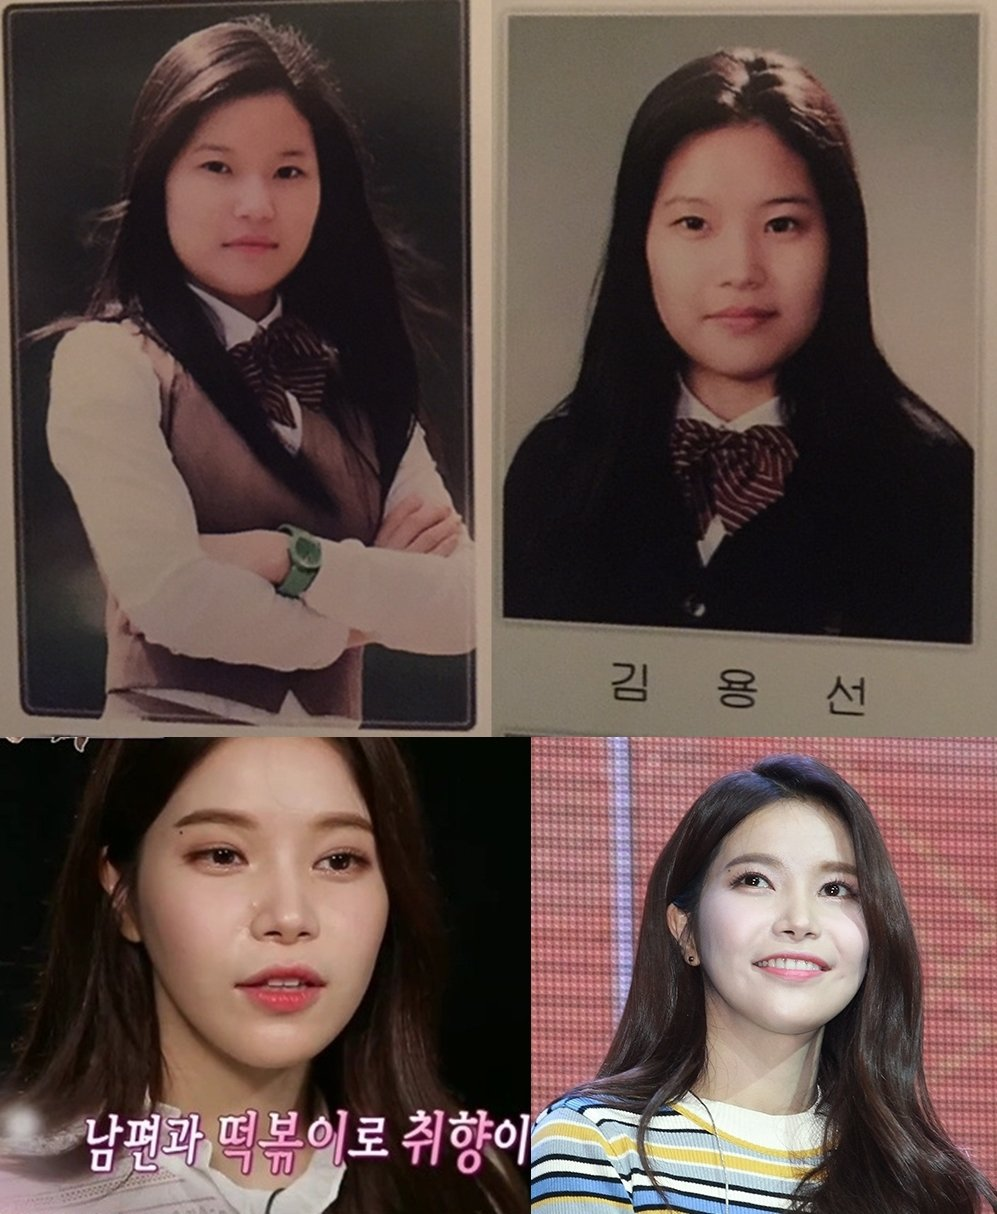 Mamamoo Solar's past picture surfaced online ~ pannatic